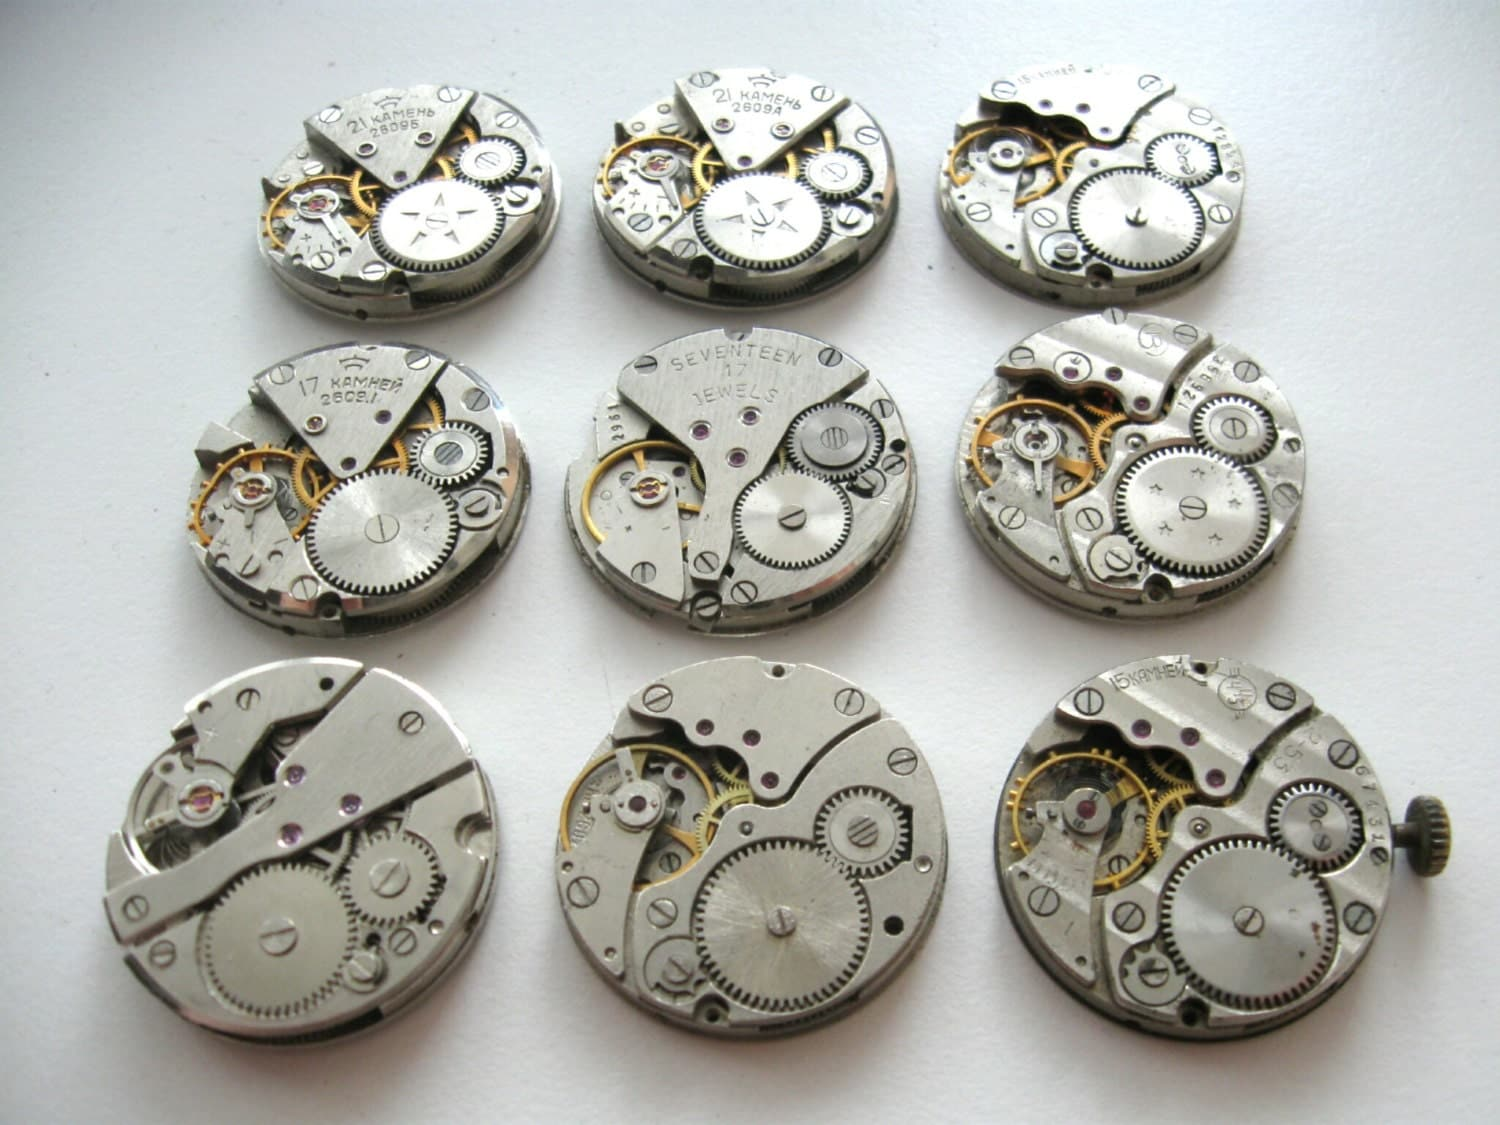 Watch wrist parts - Sold By Dedovashop